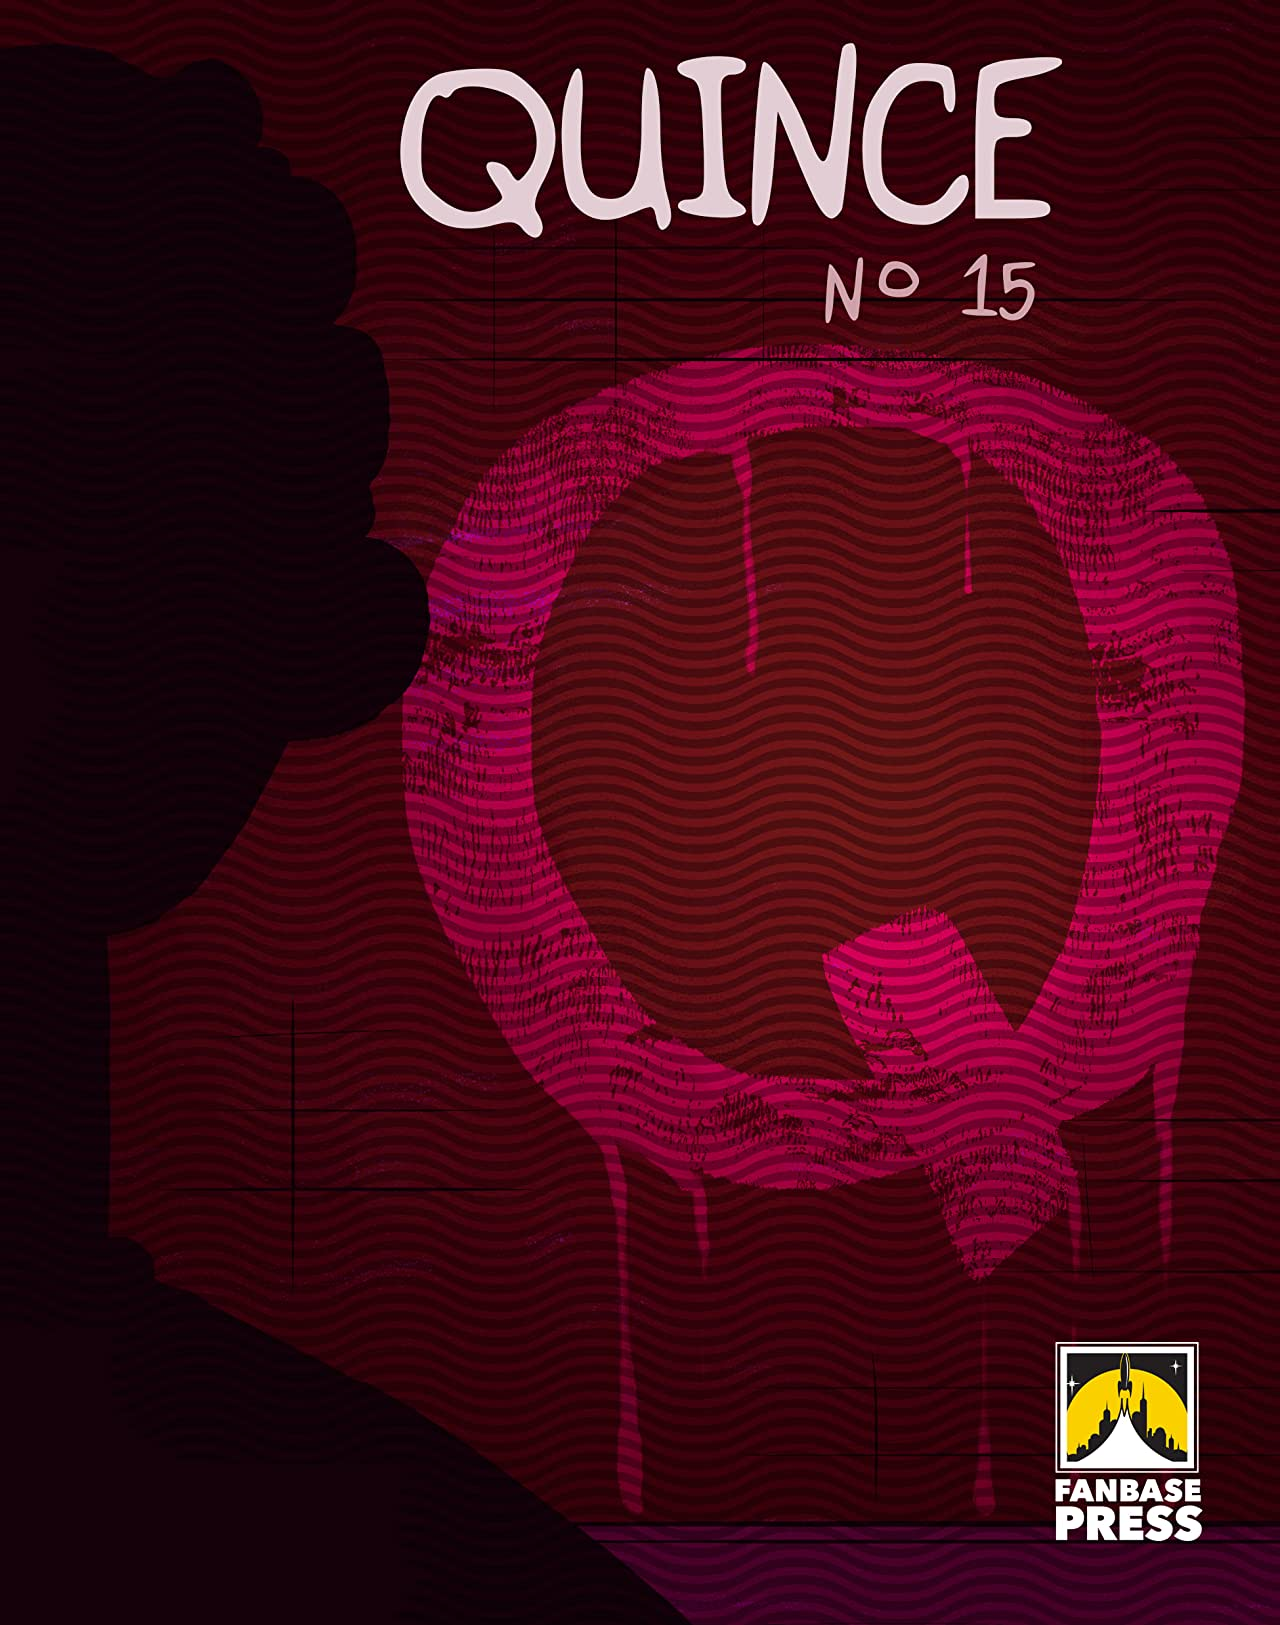 Quince (Spanish Version) #15